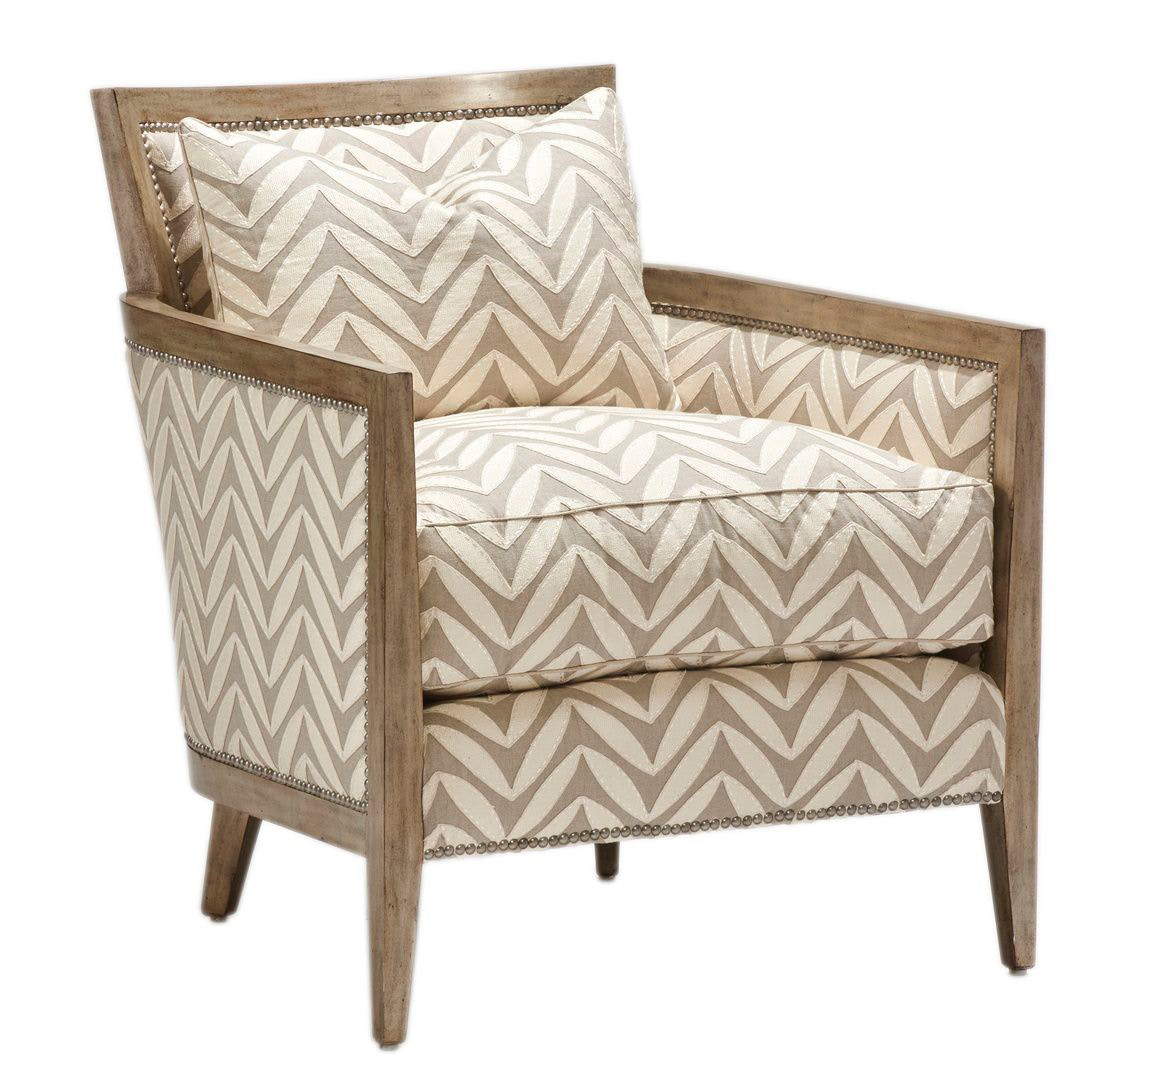 Marge Carson Calistoga Chair CLS41 From Walter E. Smithe Furniture + Design